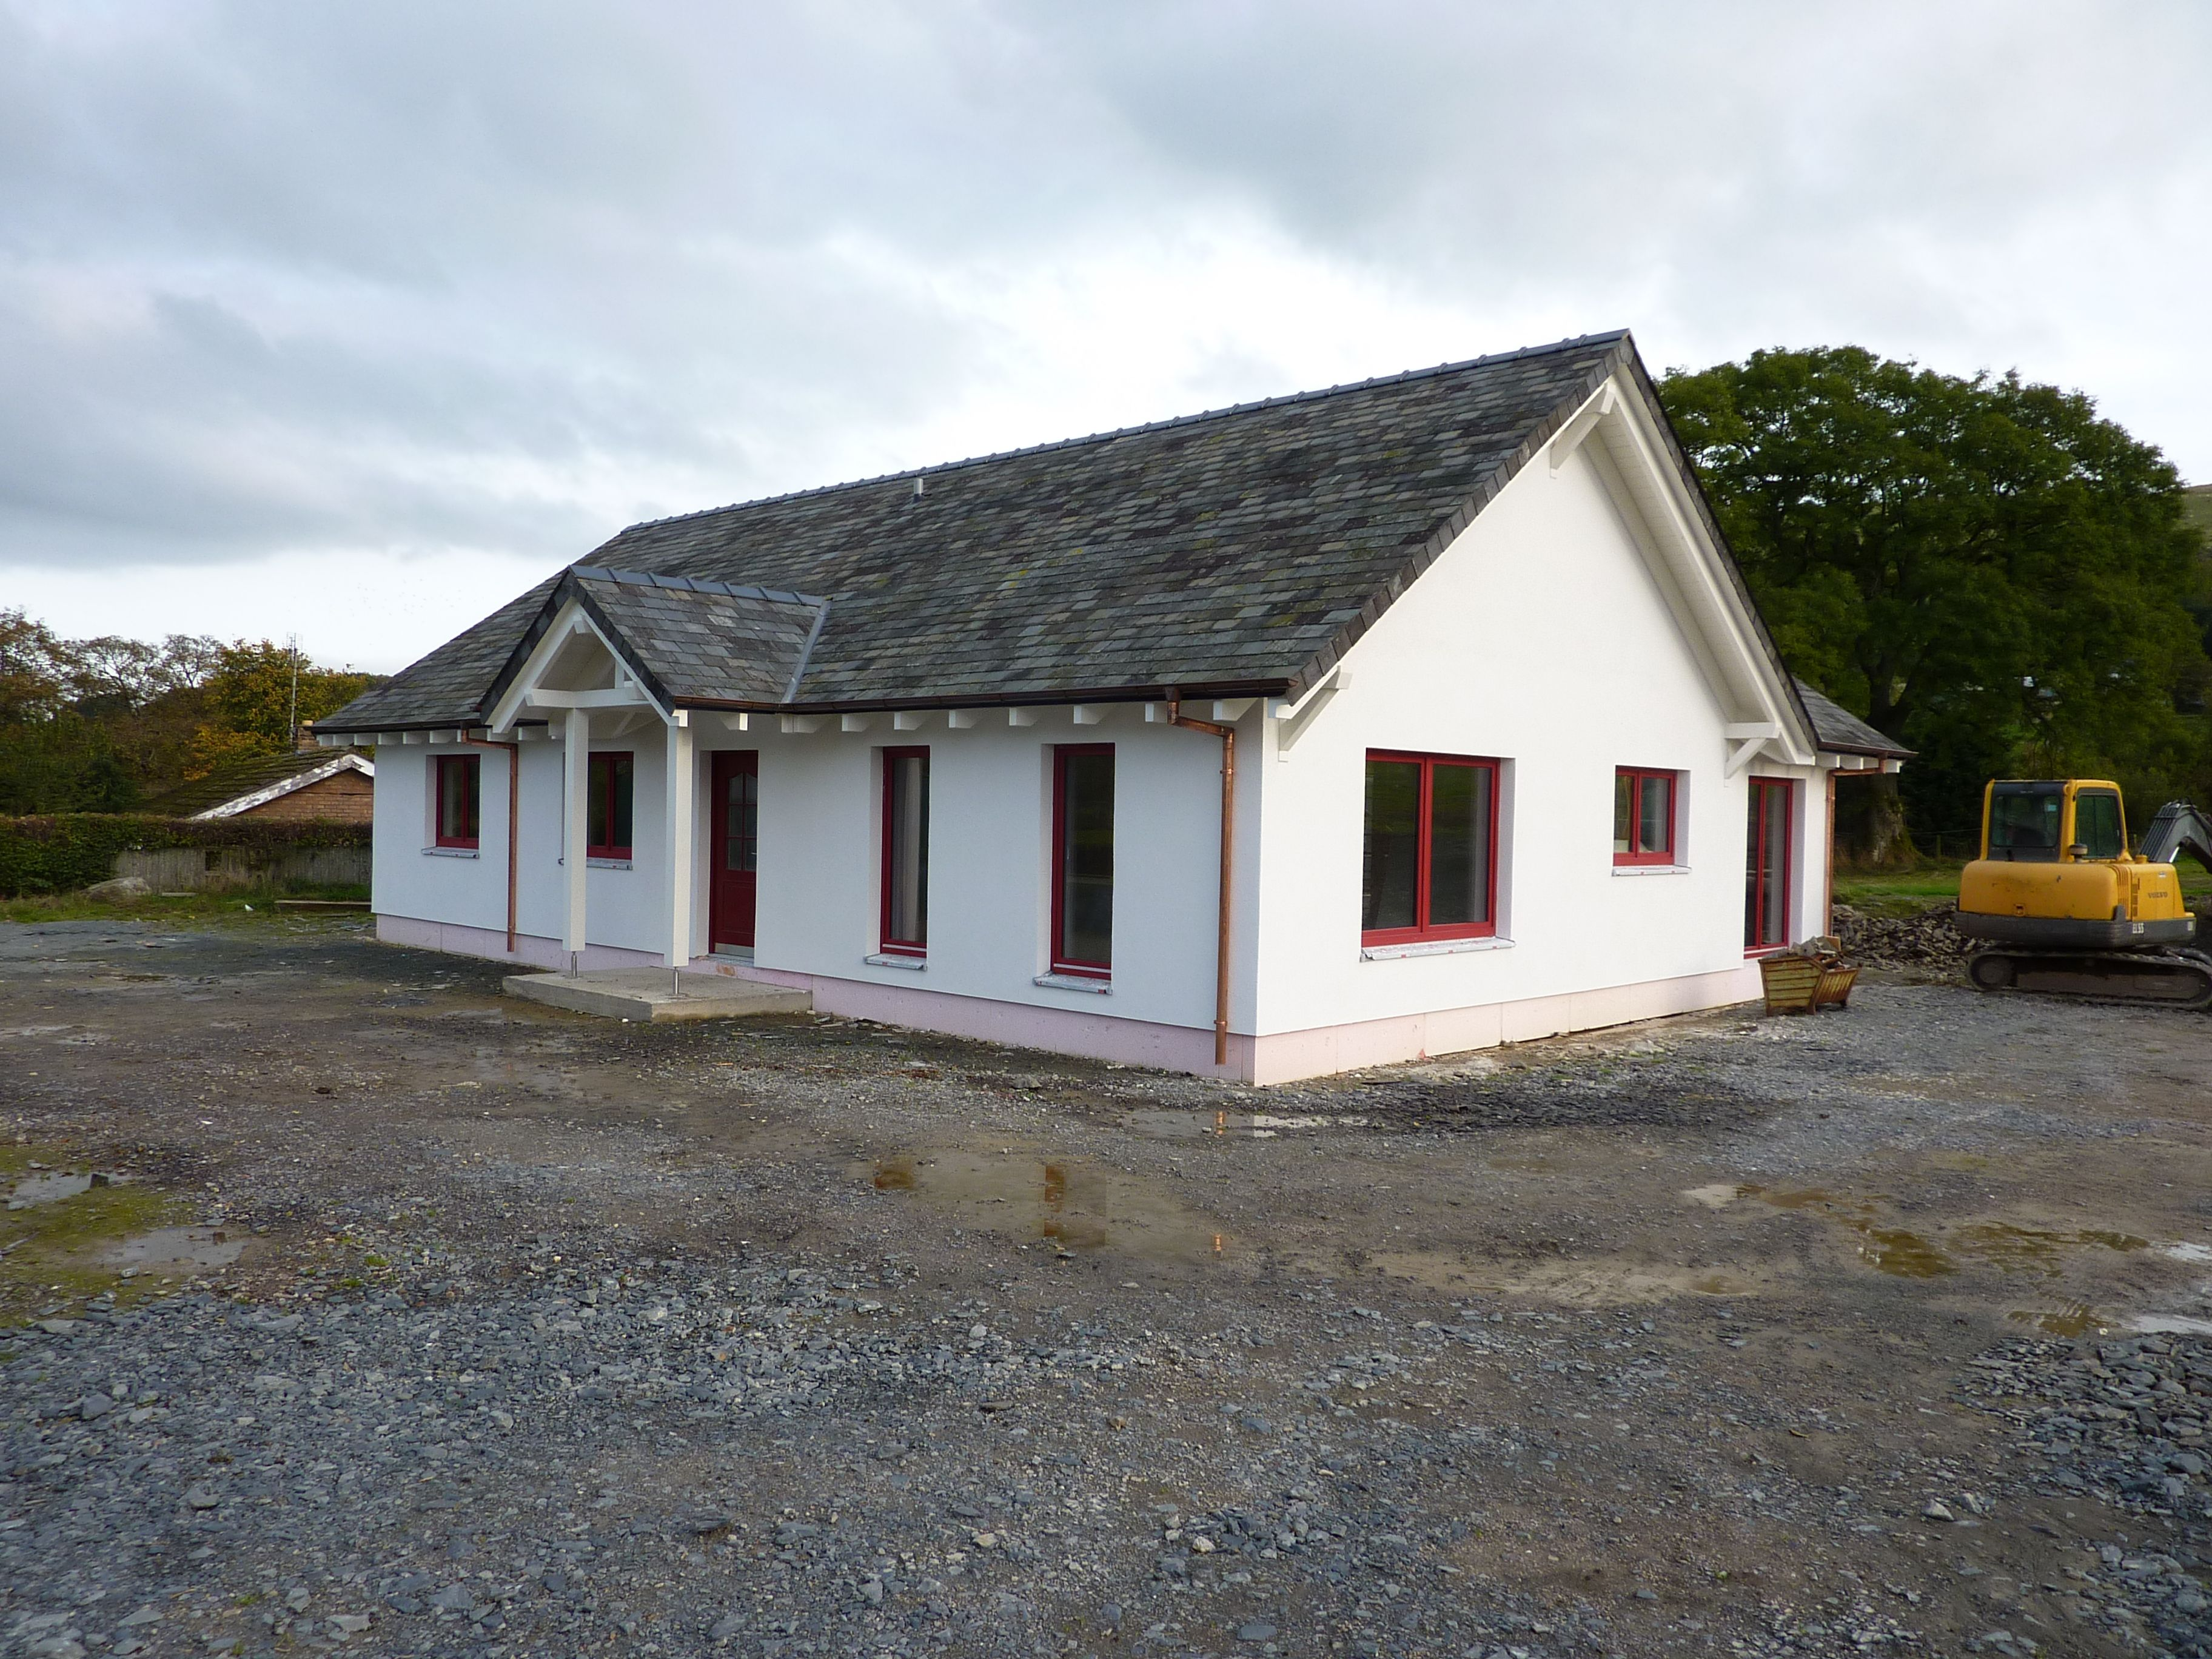 timber build frame kit self houses homes amp kits and bungalow cabin cabins post beam superb jones